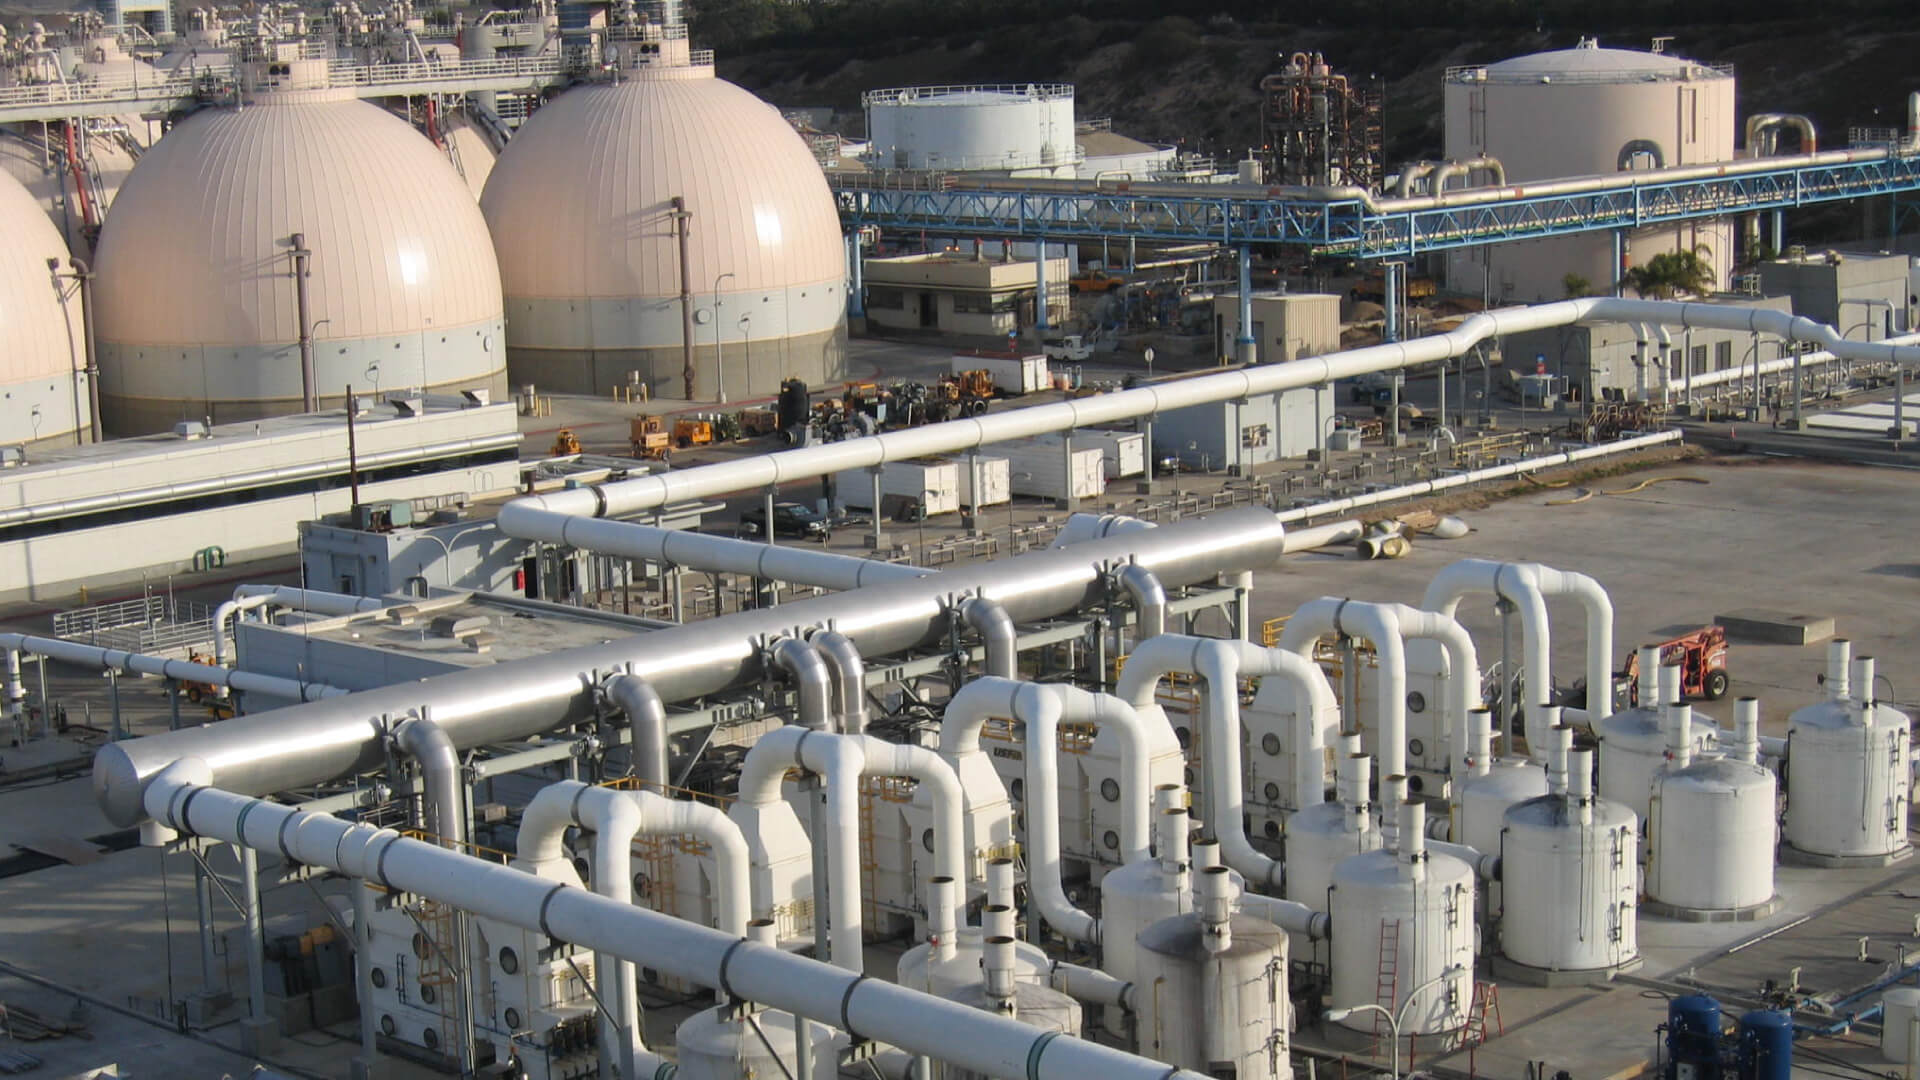 Water/Wastewater Treatment and Conveyance